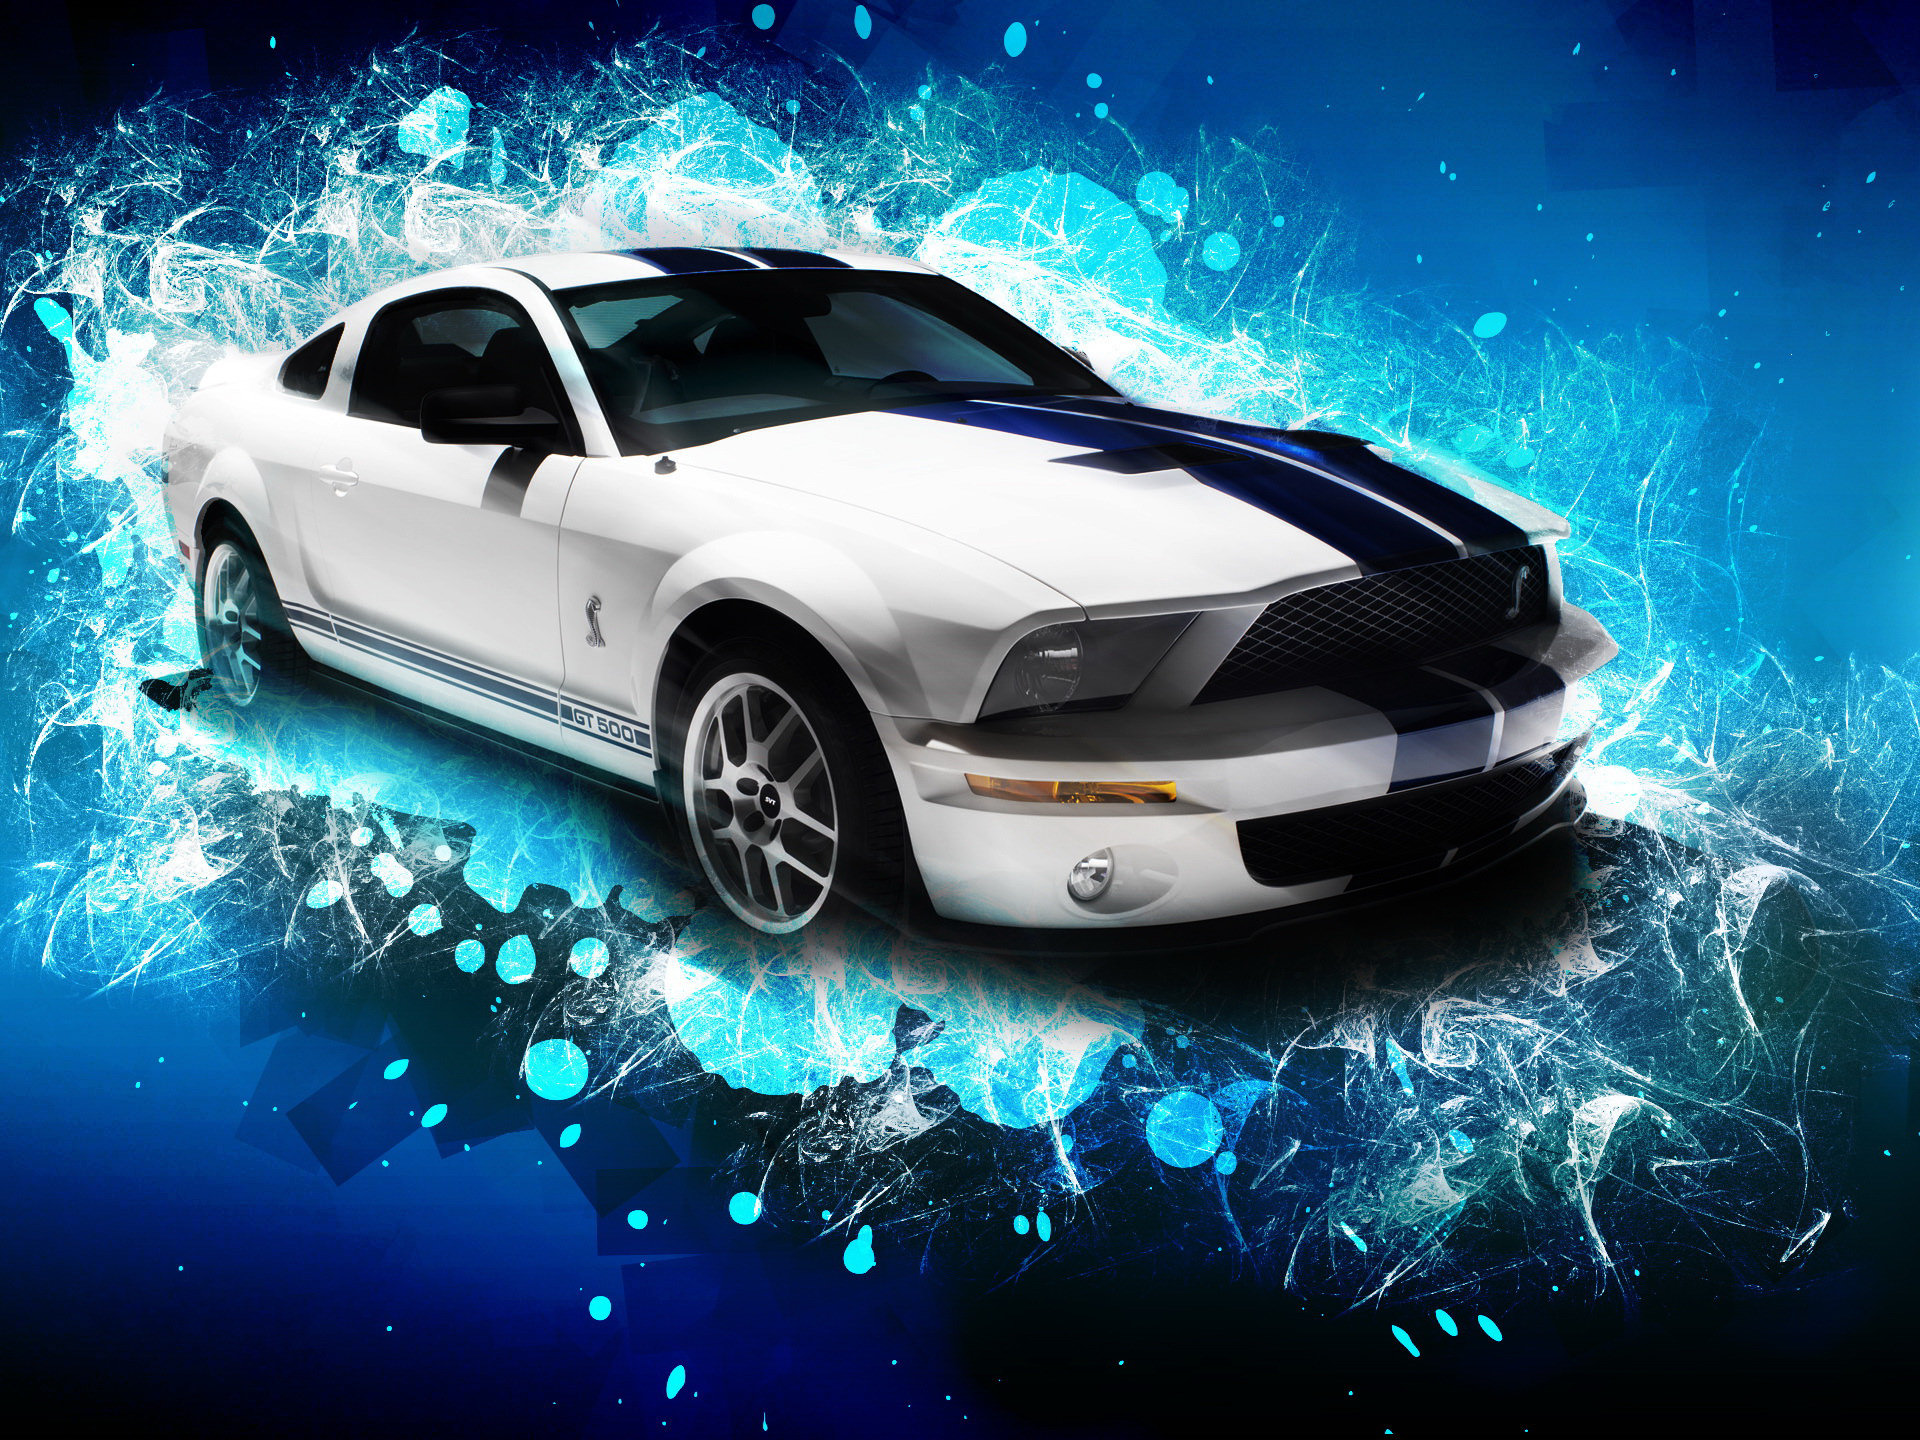 mustang gt 500 wallpapers 9375 1920x1440jpg 1920x1440